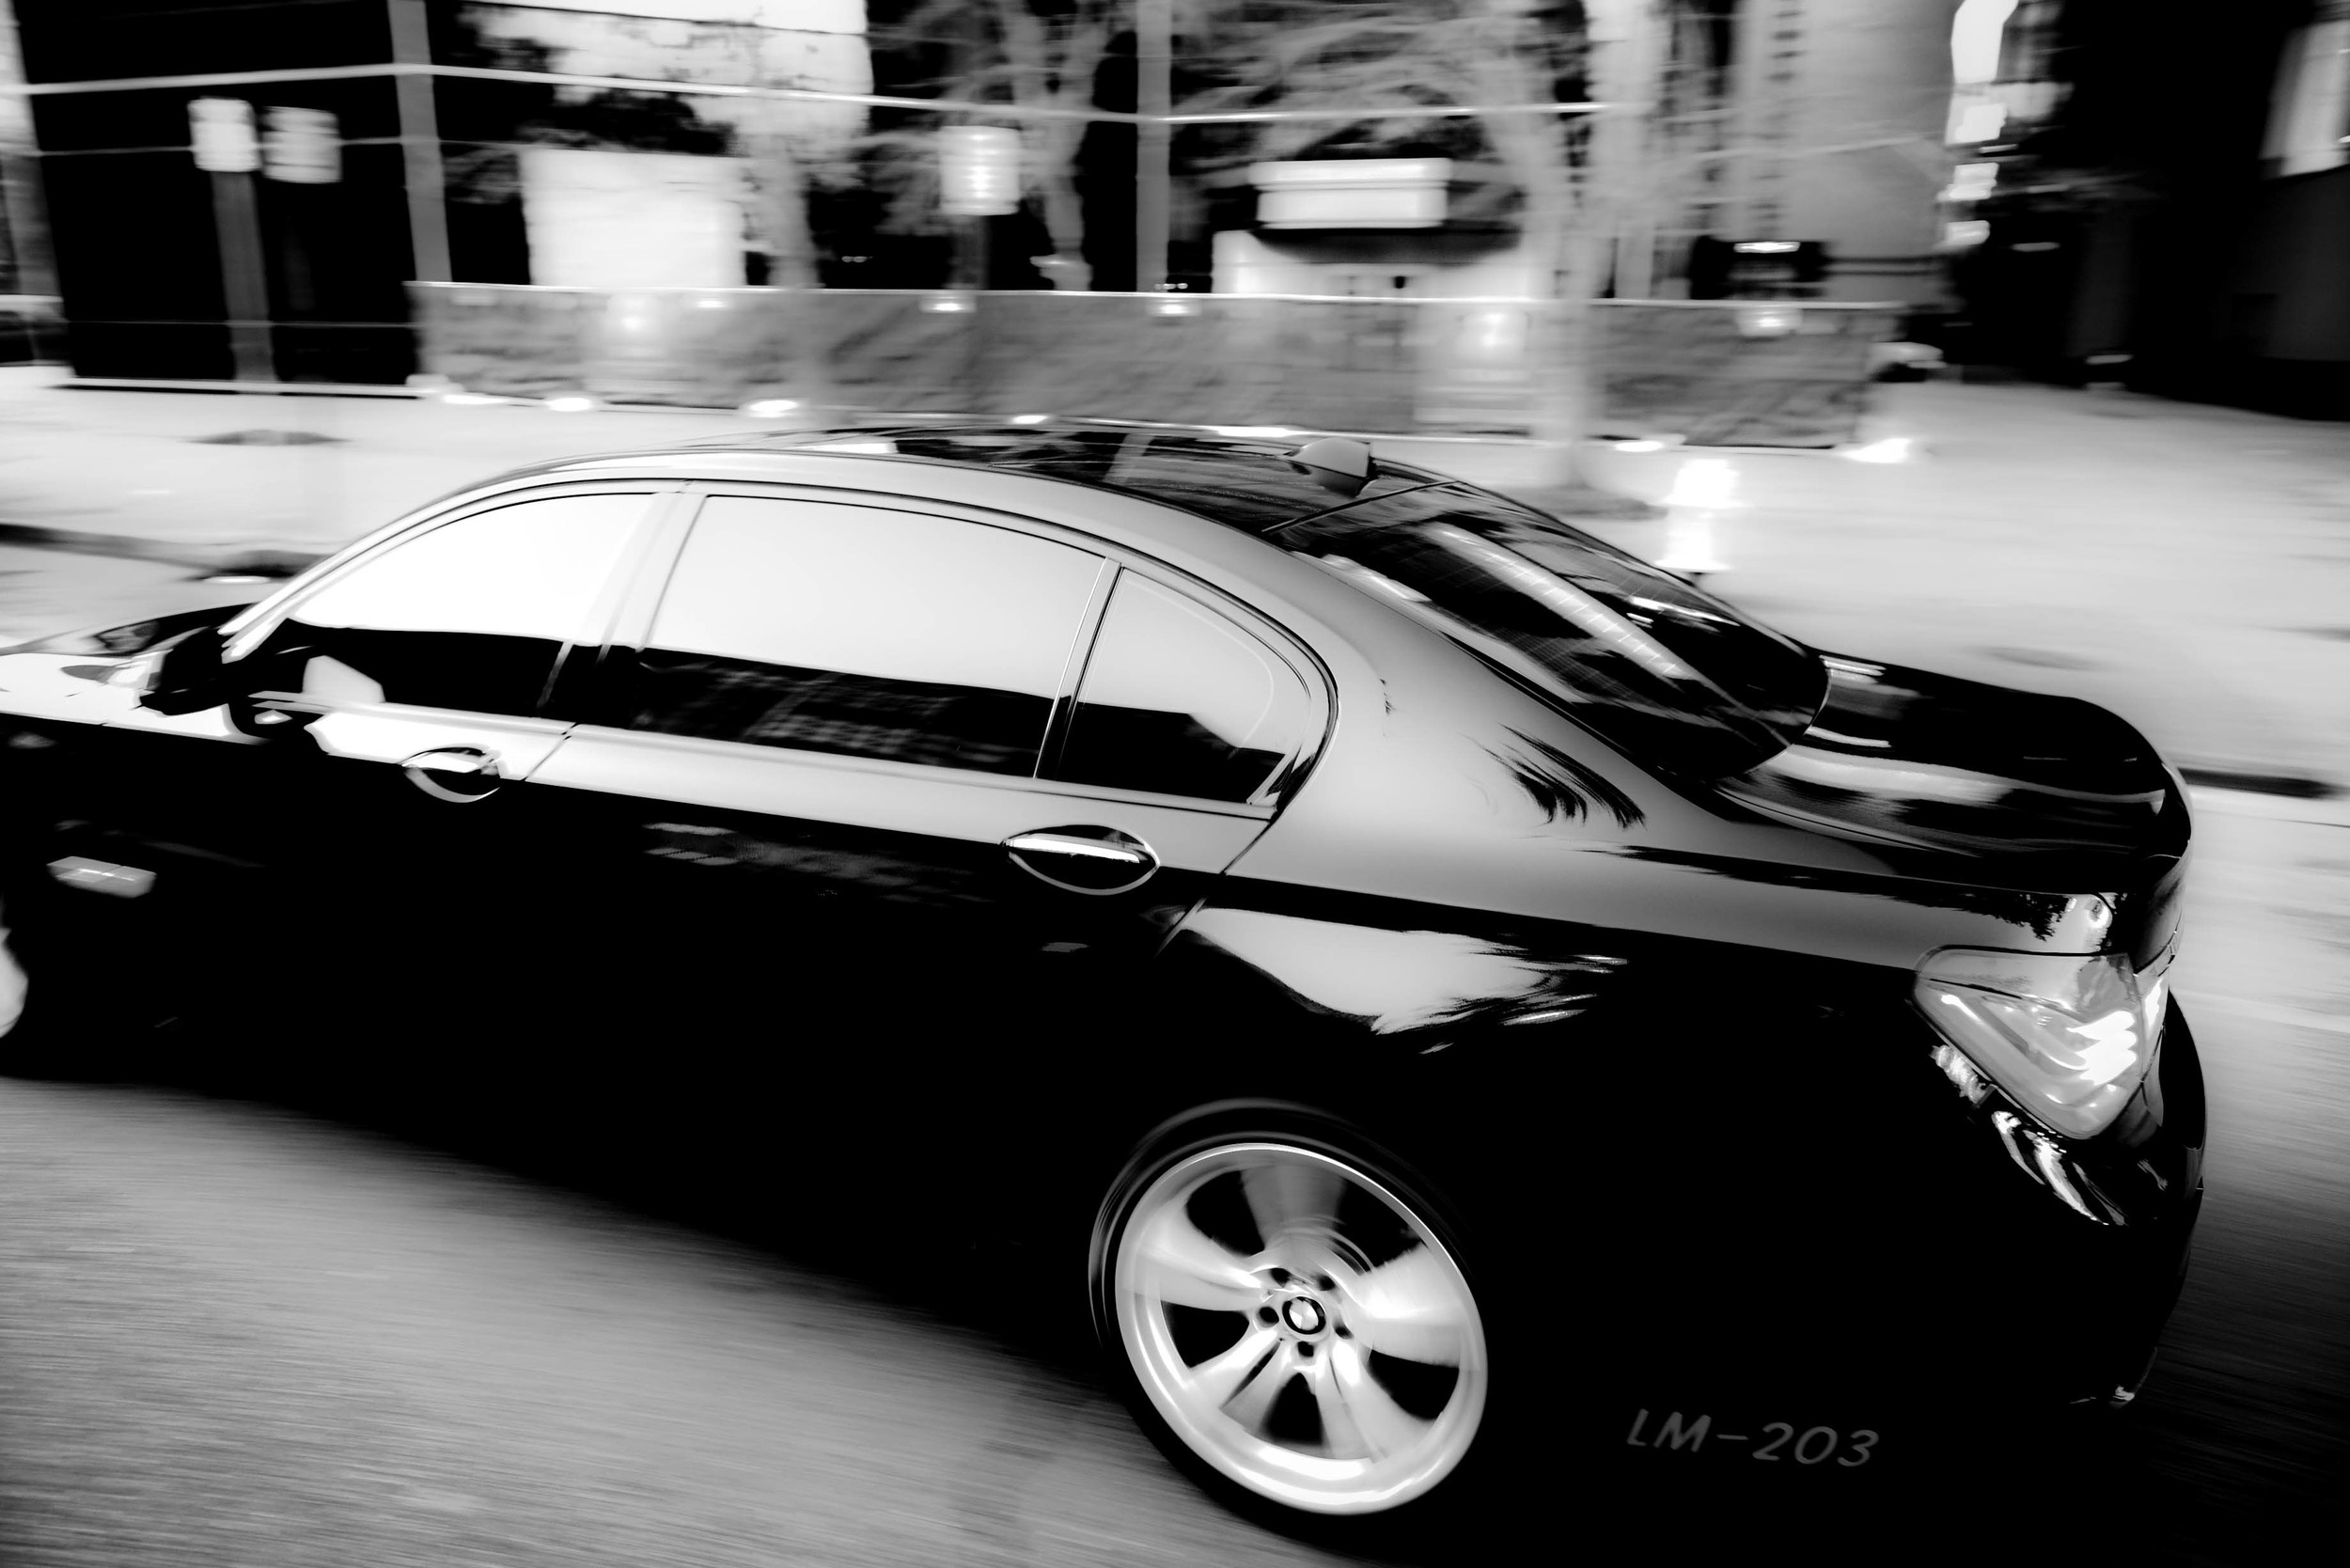 Car Service New Orleans_LCS_BMW (7 of 35).jpg